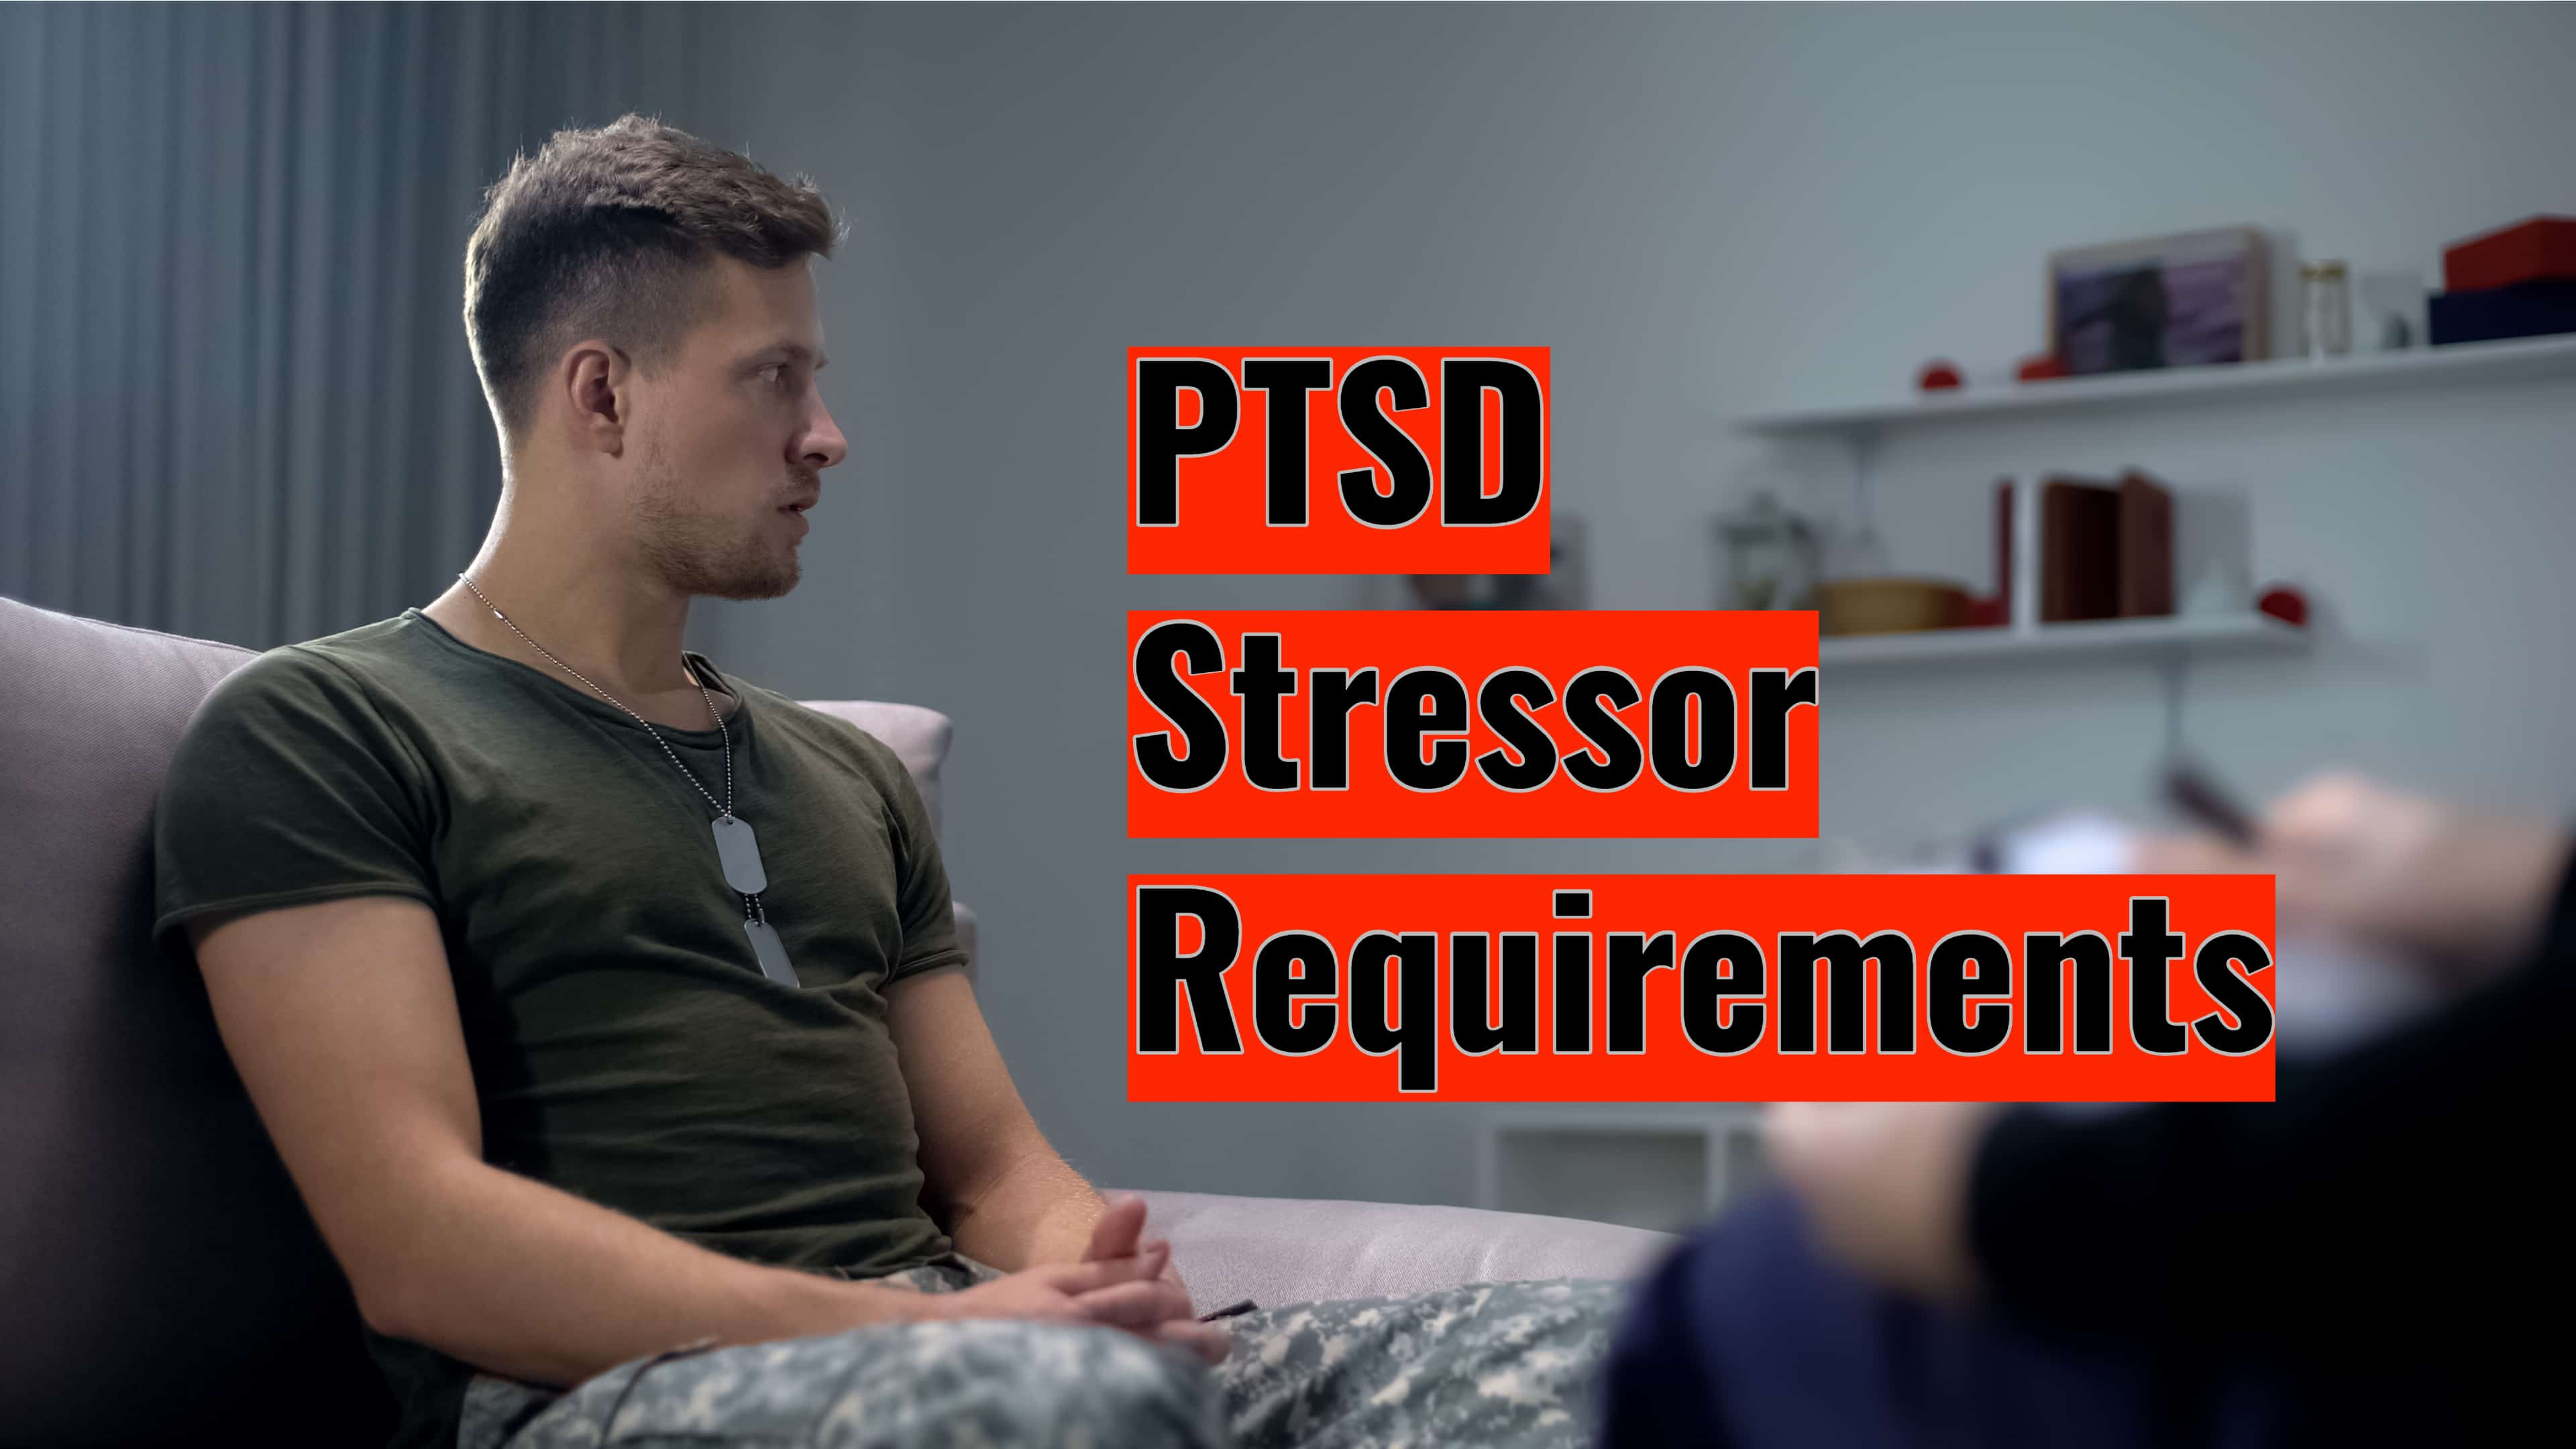 PTSD Stressor Requirements – The Definitive Guide PTSD Stressor Requirements